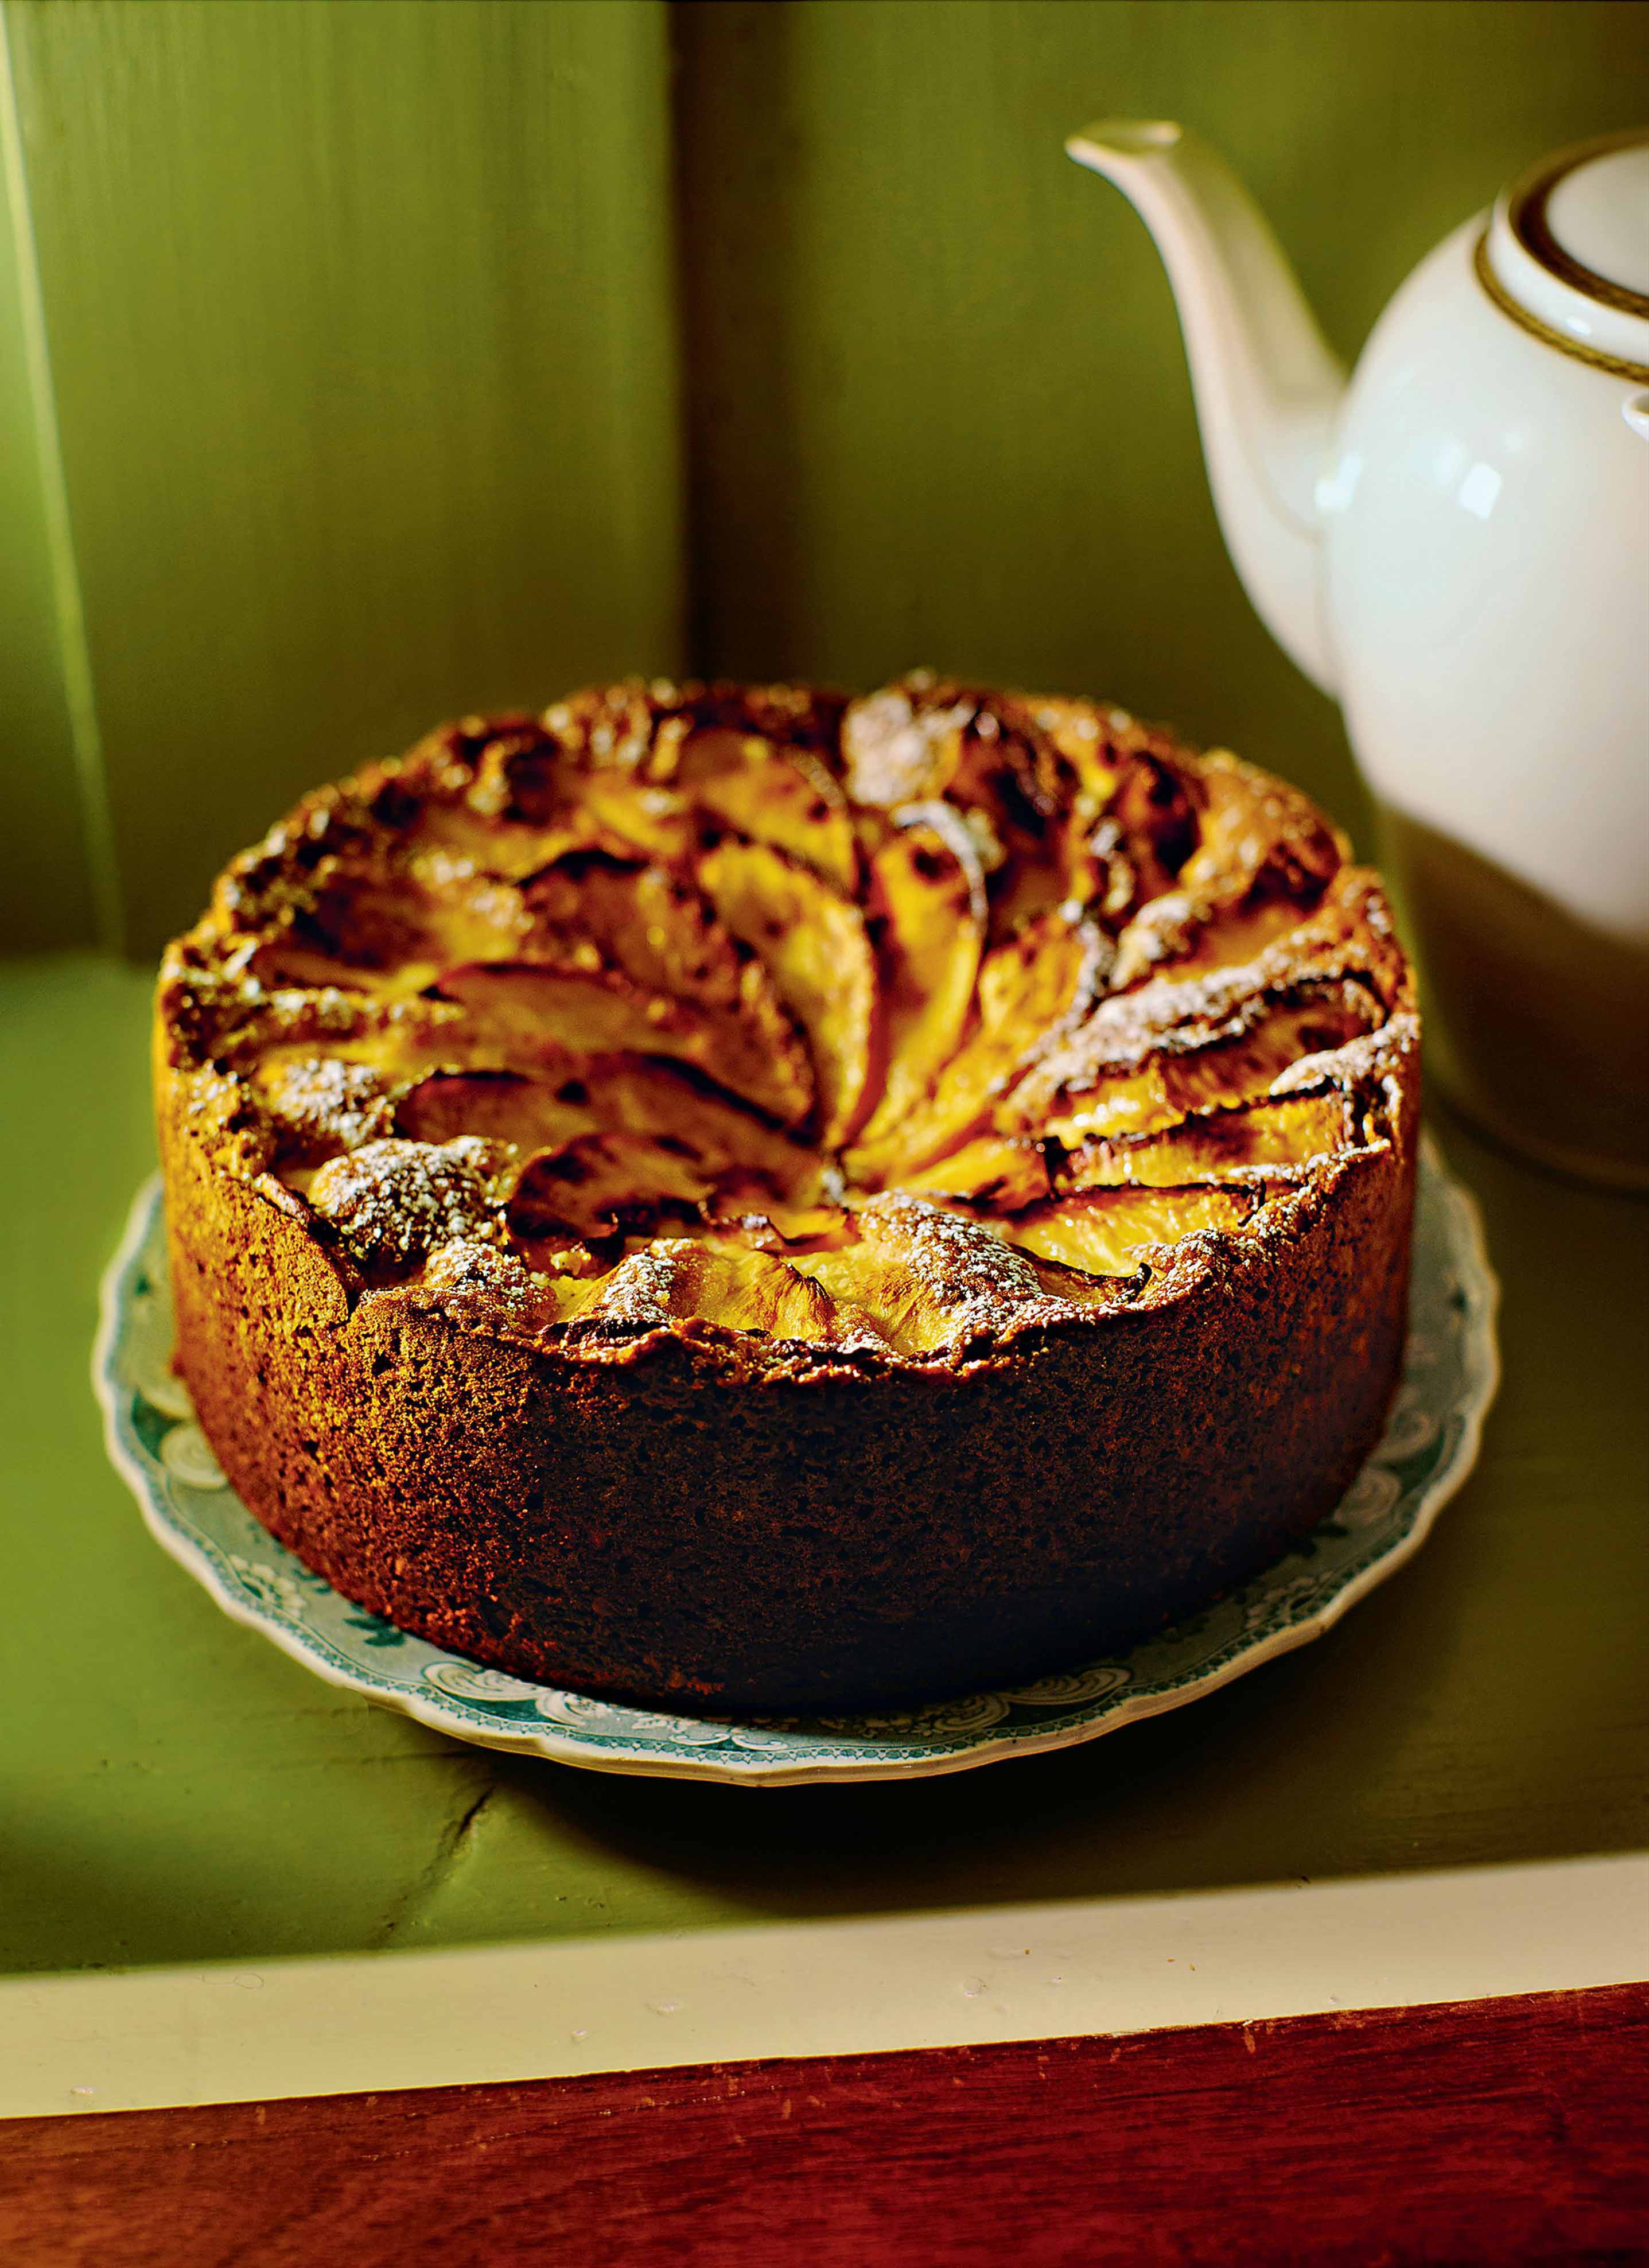 Nectarine and amaretto cake